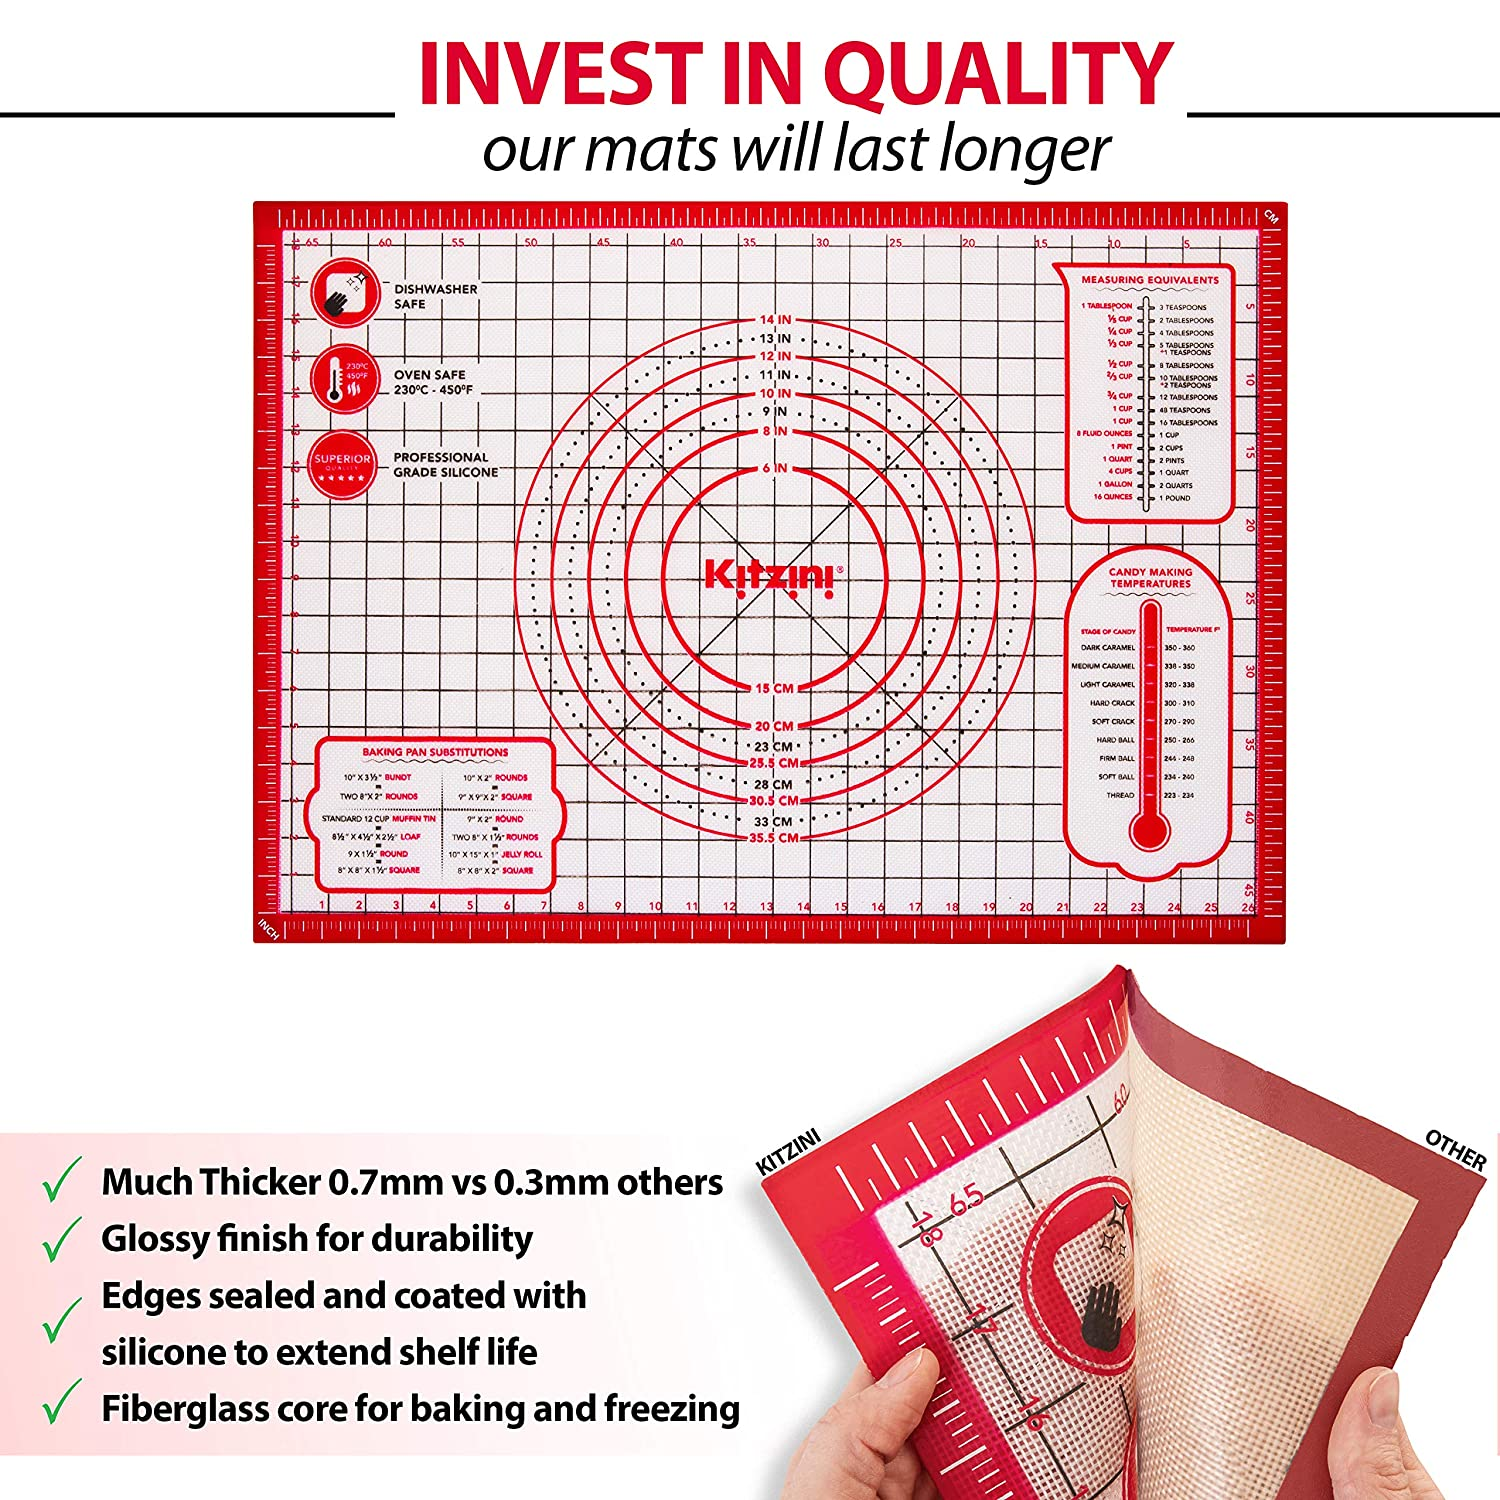 """16/"""" x 26/"""" Large Thick Non Stick Silicone Baking Mat For Rolling Dough Pastry Mat Silicone Non Slip Pie Crust Heavy Duty Easy to Clean Kneading Mat With Measurements Fondant Pizza and Cookies"""